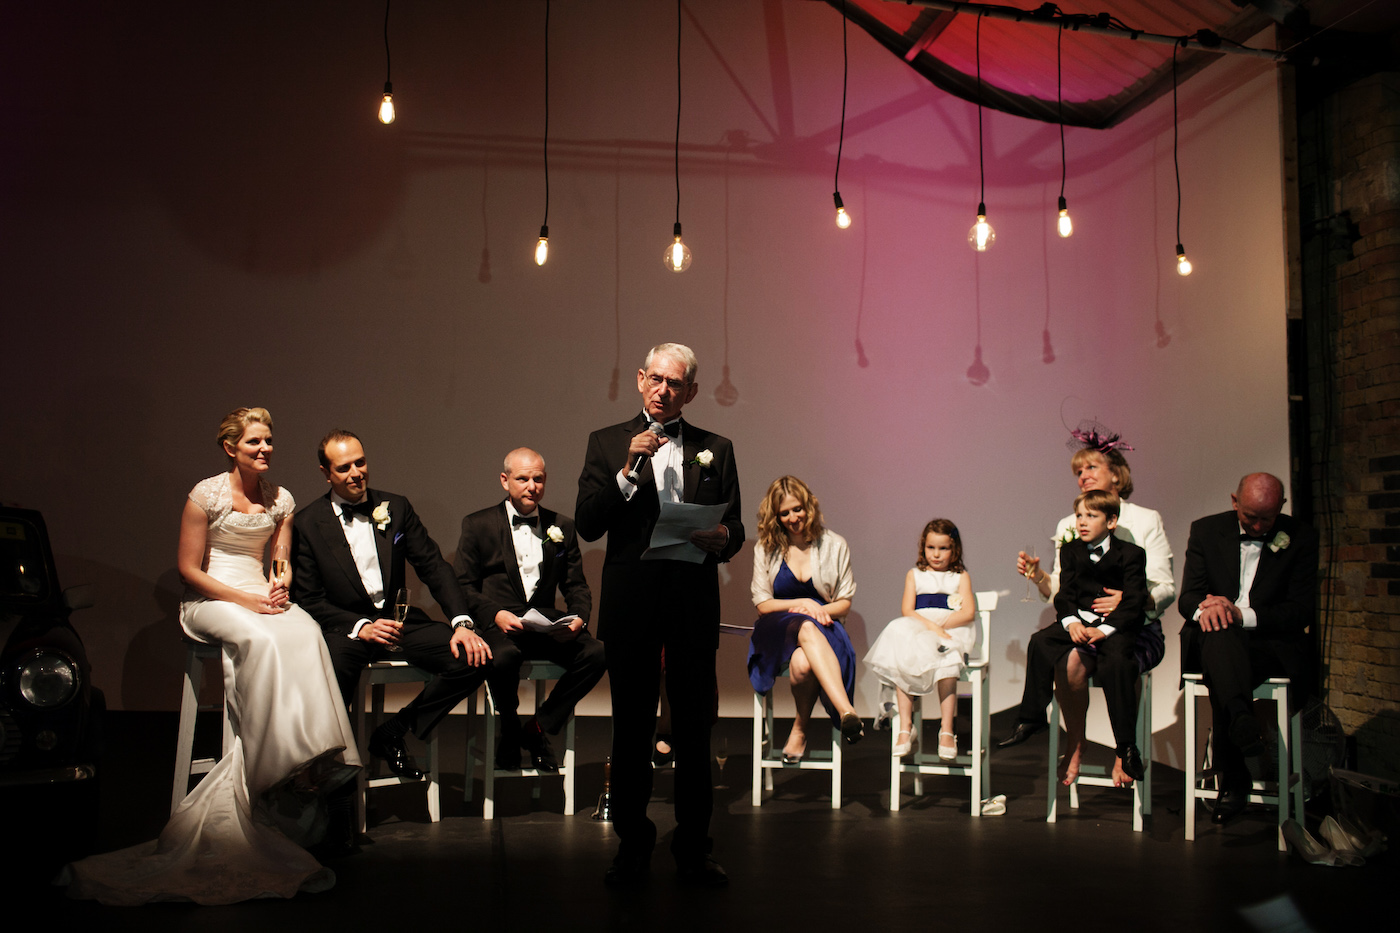 Shoreditch Studios Wedding Venue